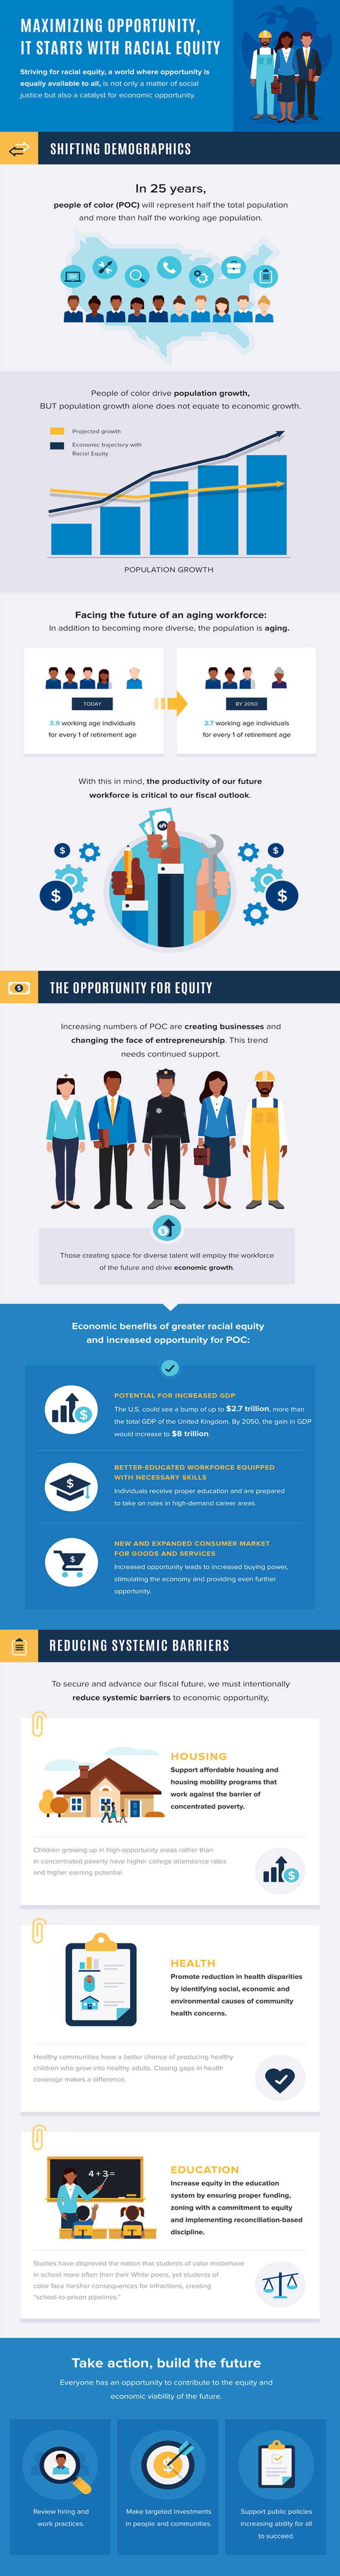 The Economic Power of Racial Equity: Maximize Opportunity, Maximize Growth - Infographic